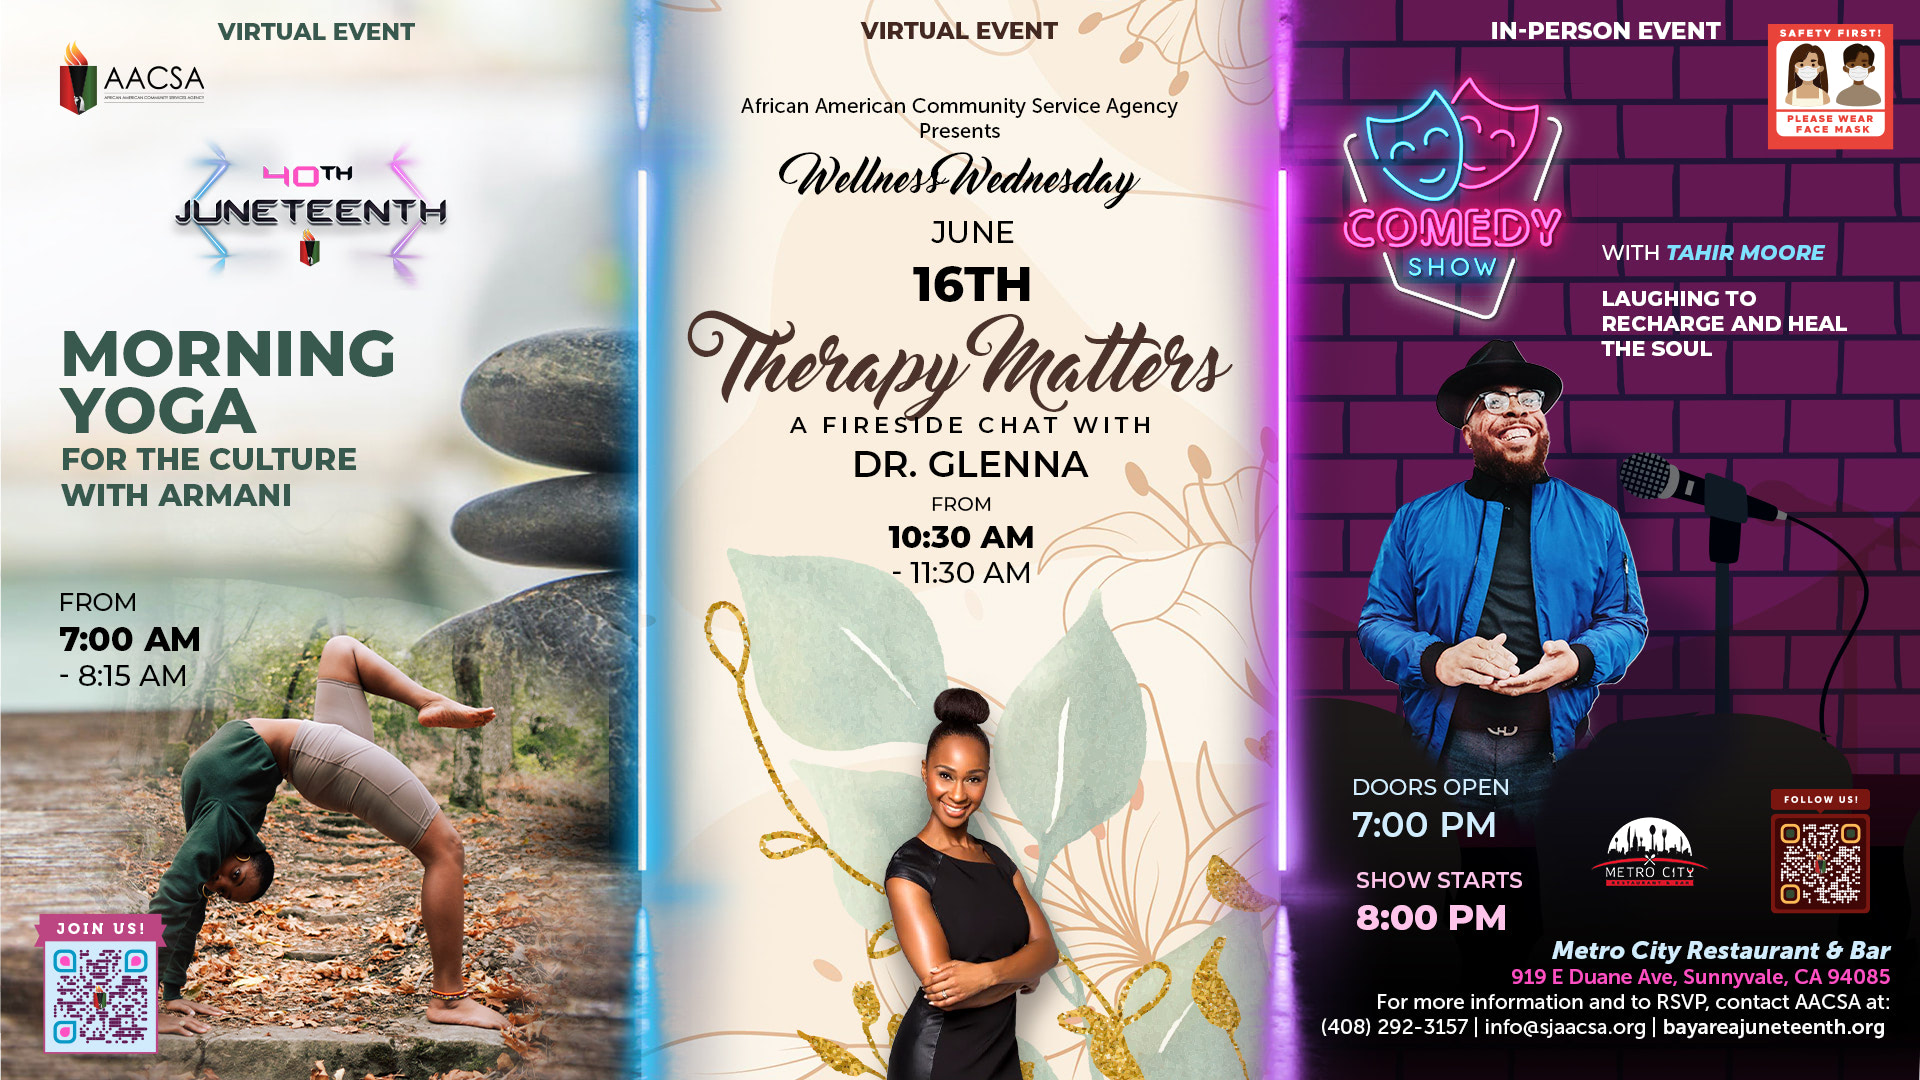 """Banner for the 40th Annual Juneteenth In The Park Celebration Week event: Wellness Wednesday. Starting with the """"Morning Yoga with Armani"""" at 7:00am until 8:15am. Followed by """"Therapy Matters: a Fireside Chat with Dr. Glenna"""" from 10:30am until 11:30am. Finishing off with """"Comedy Show with Tahir Moore: Laughing to Recharge and Heal The Soul"""". Doors open at 7:00pm, show starts at 8:00pm PST. Click the banner to see event details & sign-up!"""